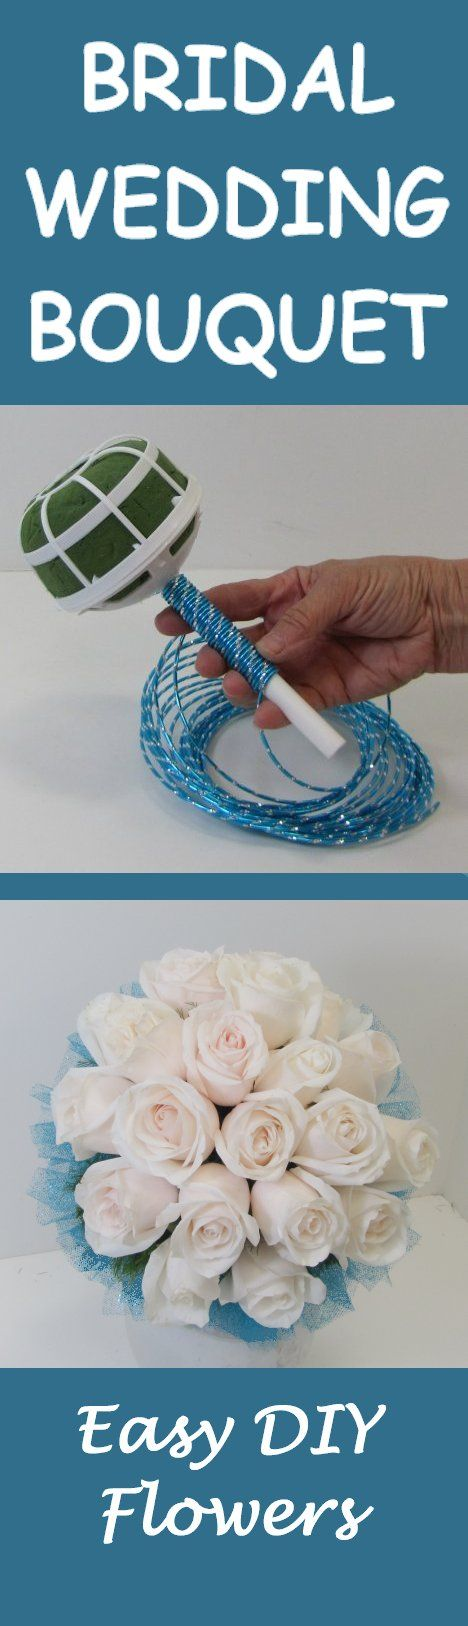 Learn How to Make Your Own Bridal Bouquet - Easy DIY Wedding Flower Tutorials   Learn how to make bridal bouquets, corsages, boutonnieres, reception table centerpieces and church decorations.  Buy wholesale fresh flowers and discount florist supplies.